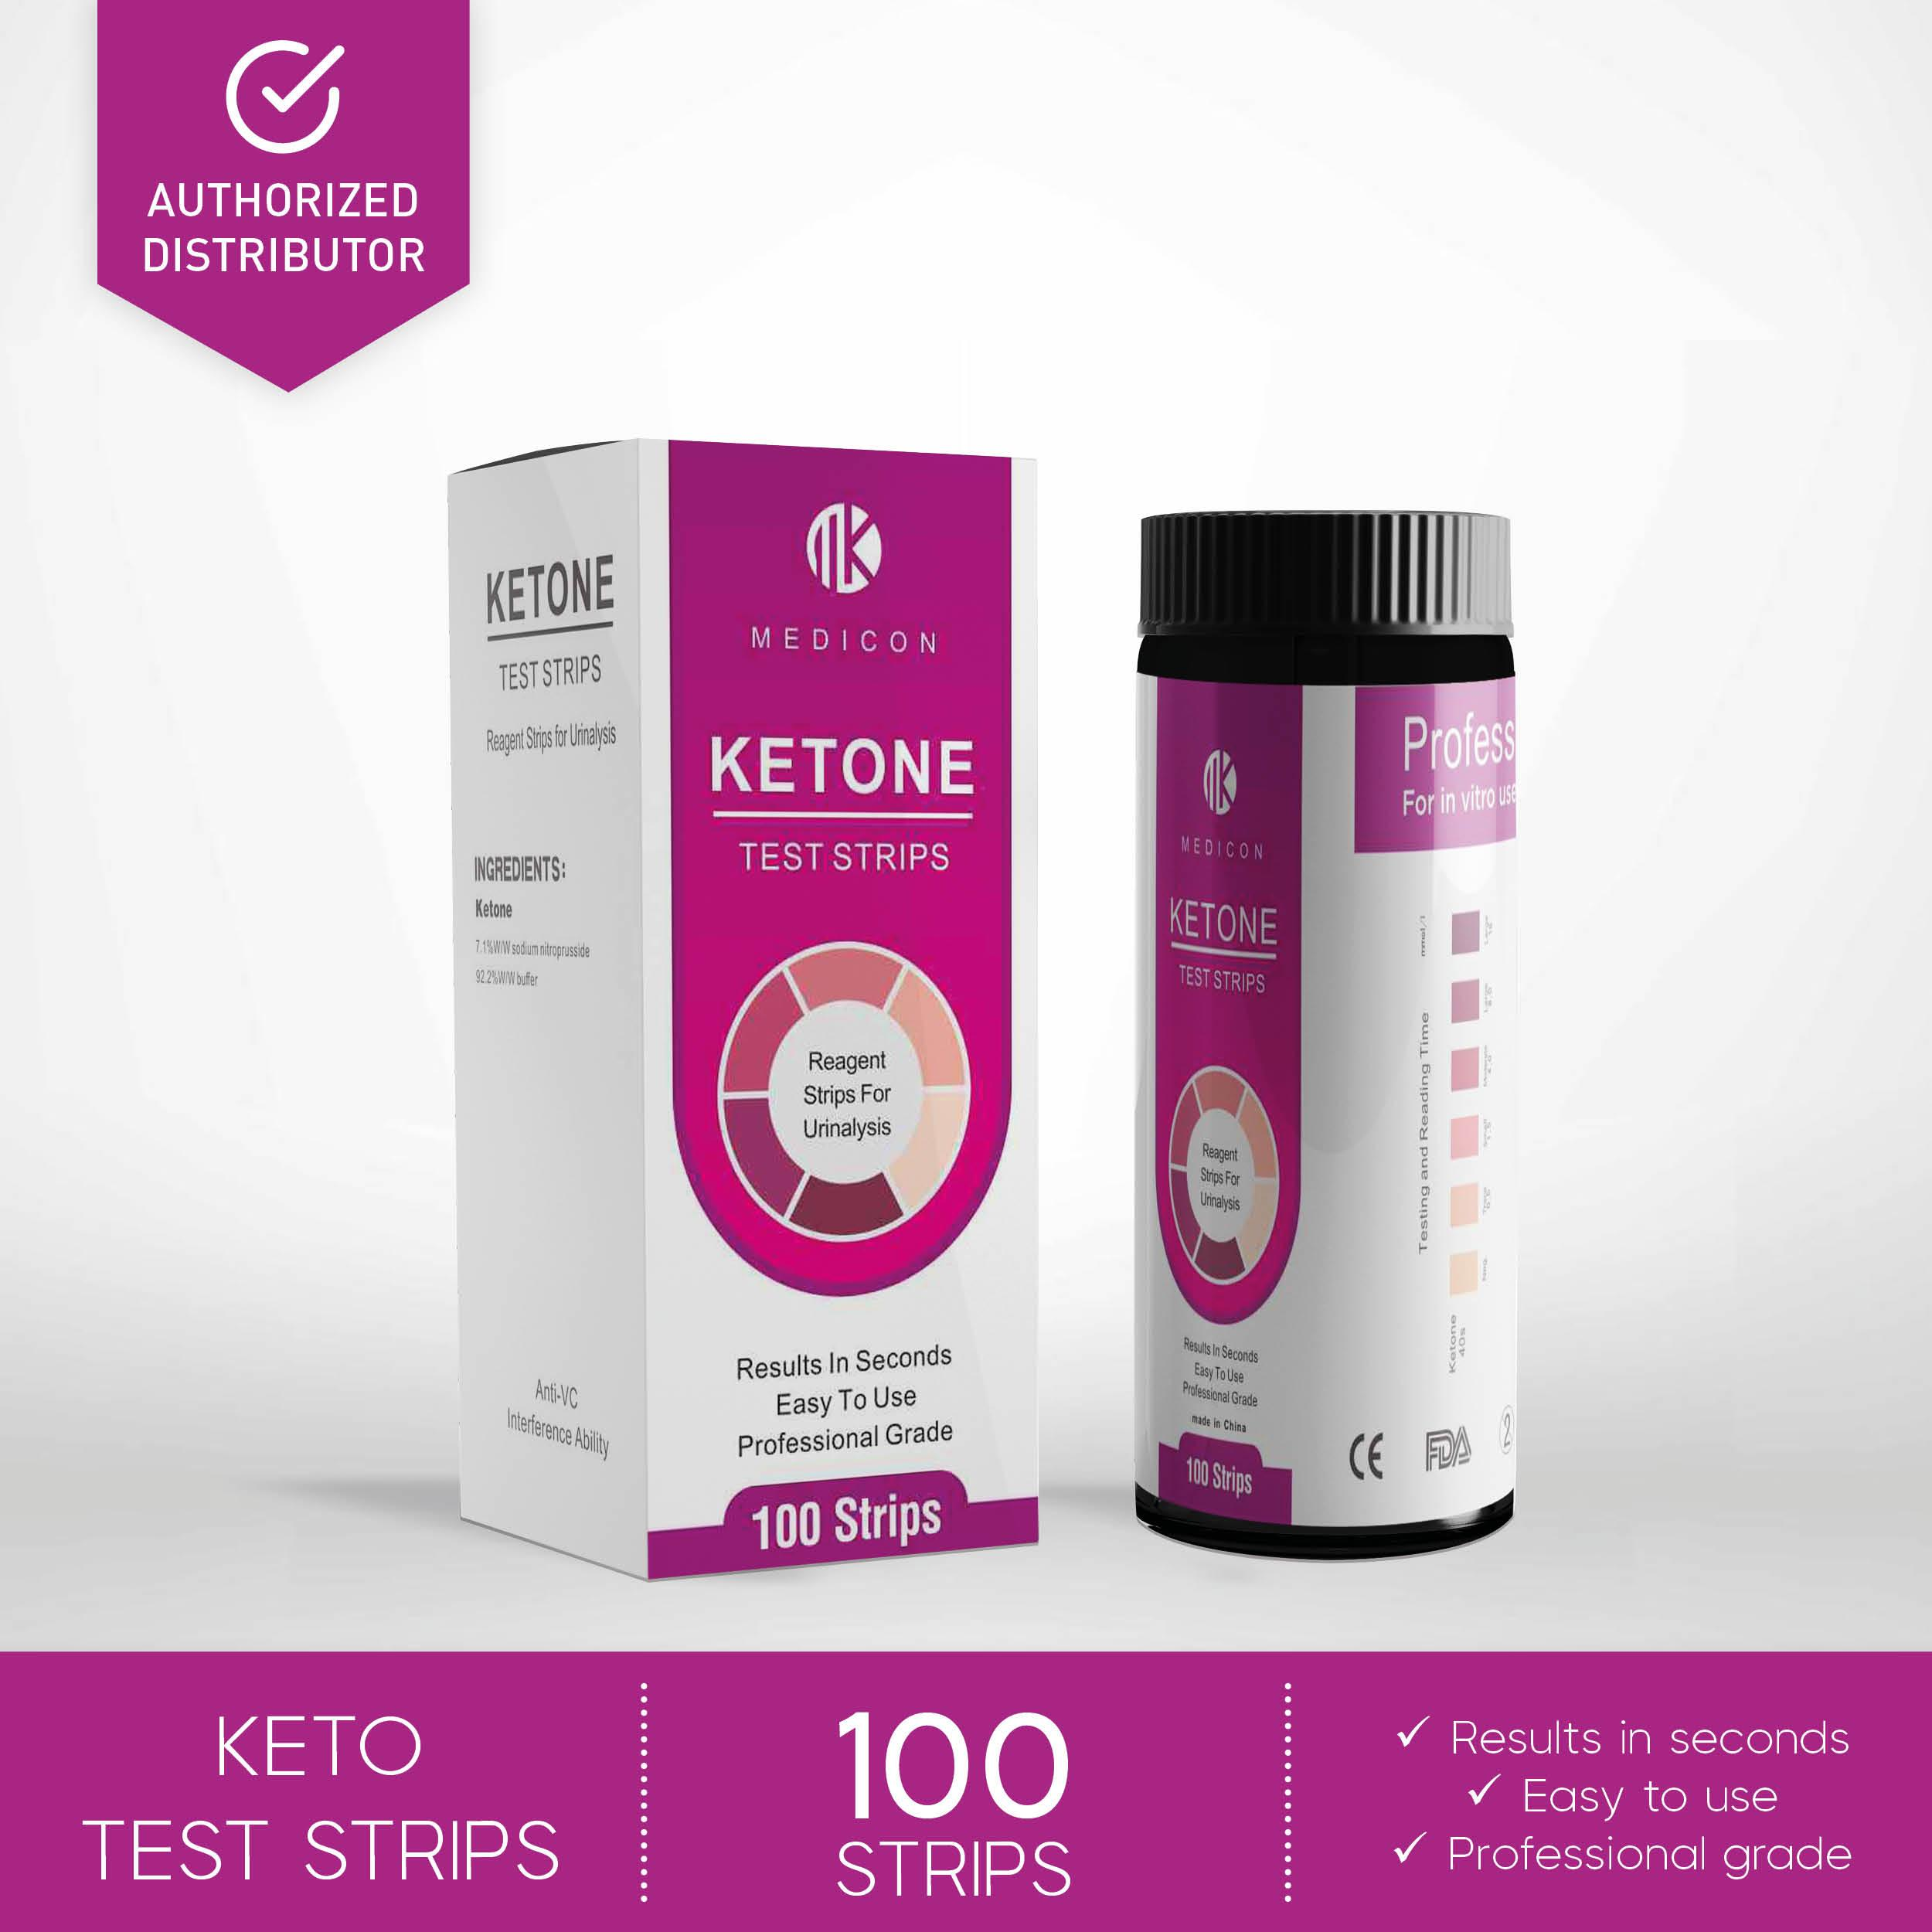 Ketone Test Strips 100s (Ideal for Keto Dieters)